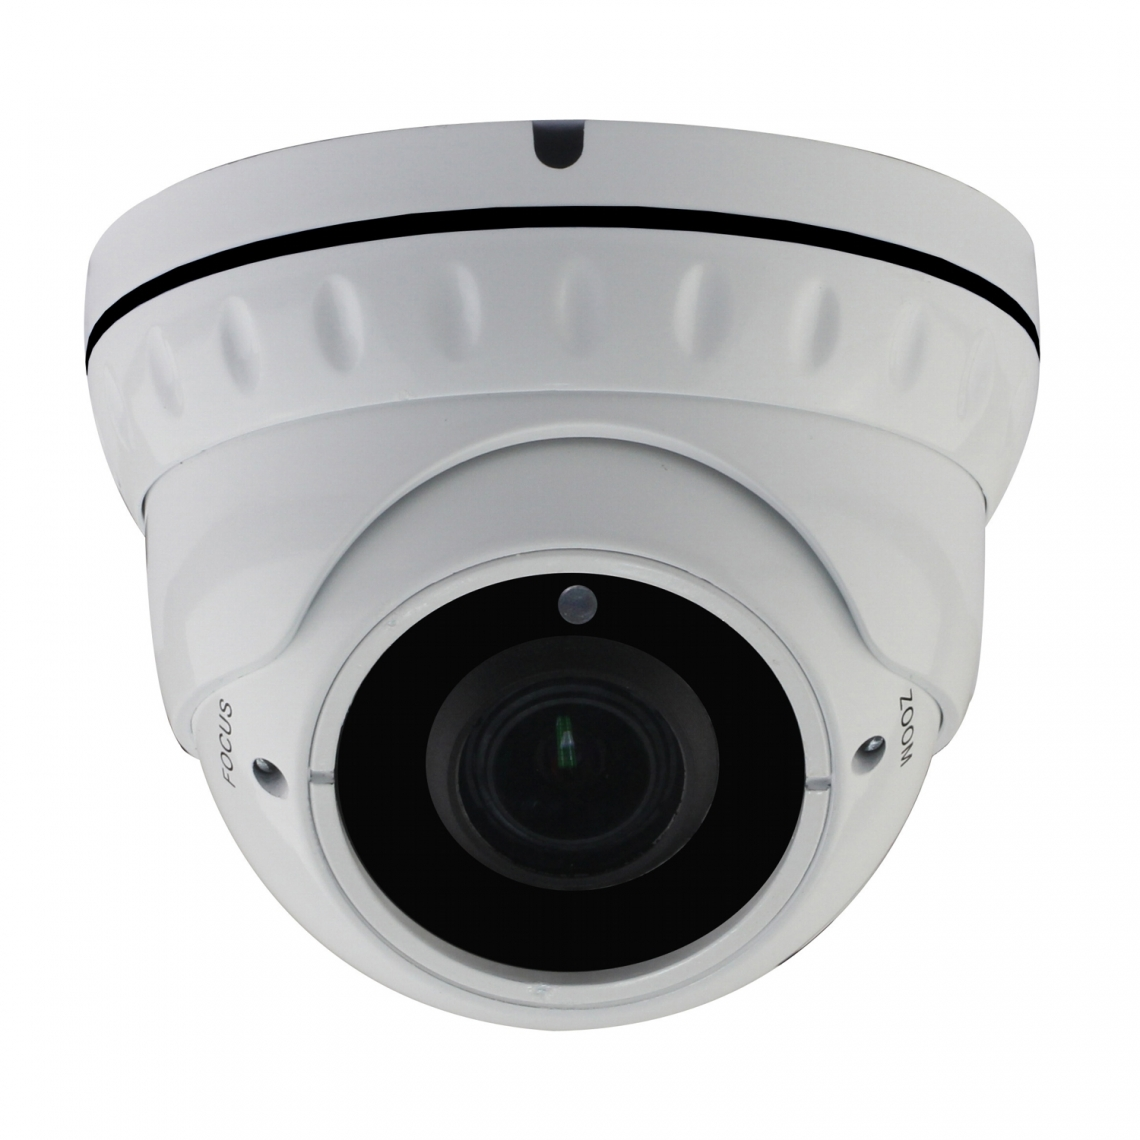 MINI DOME AHD CAMERA - TVT73FAHD